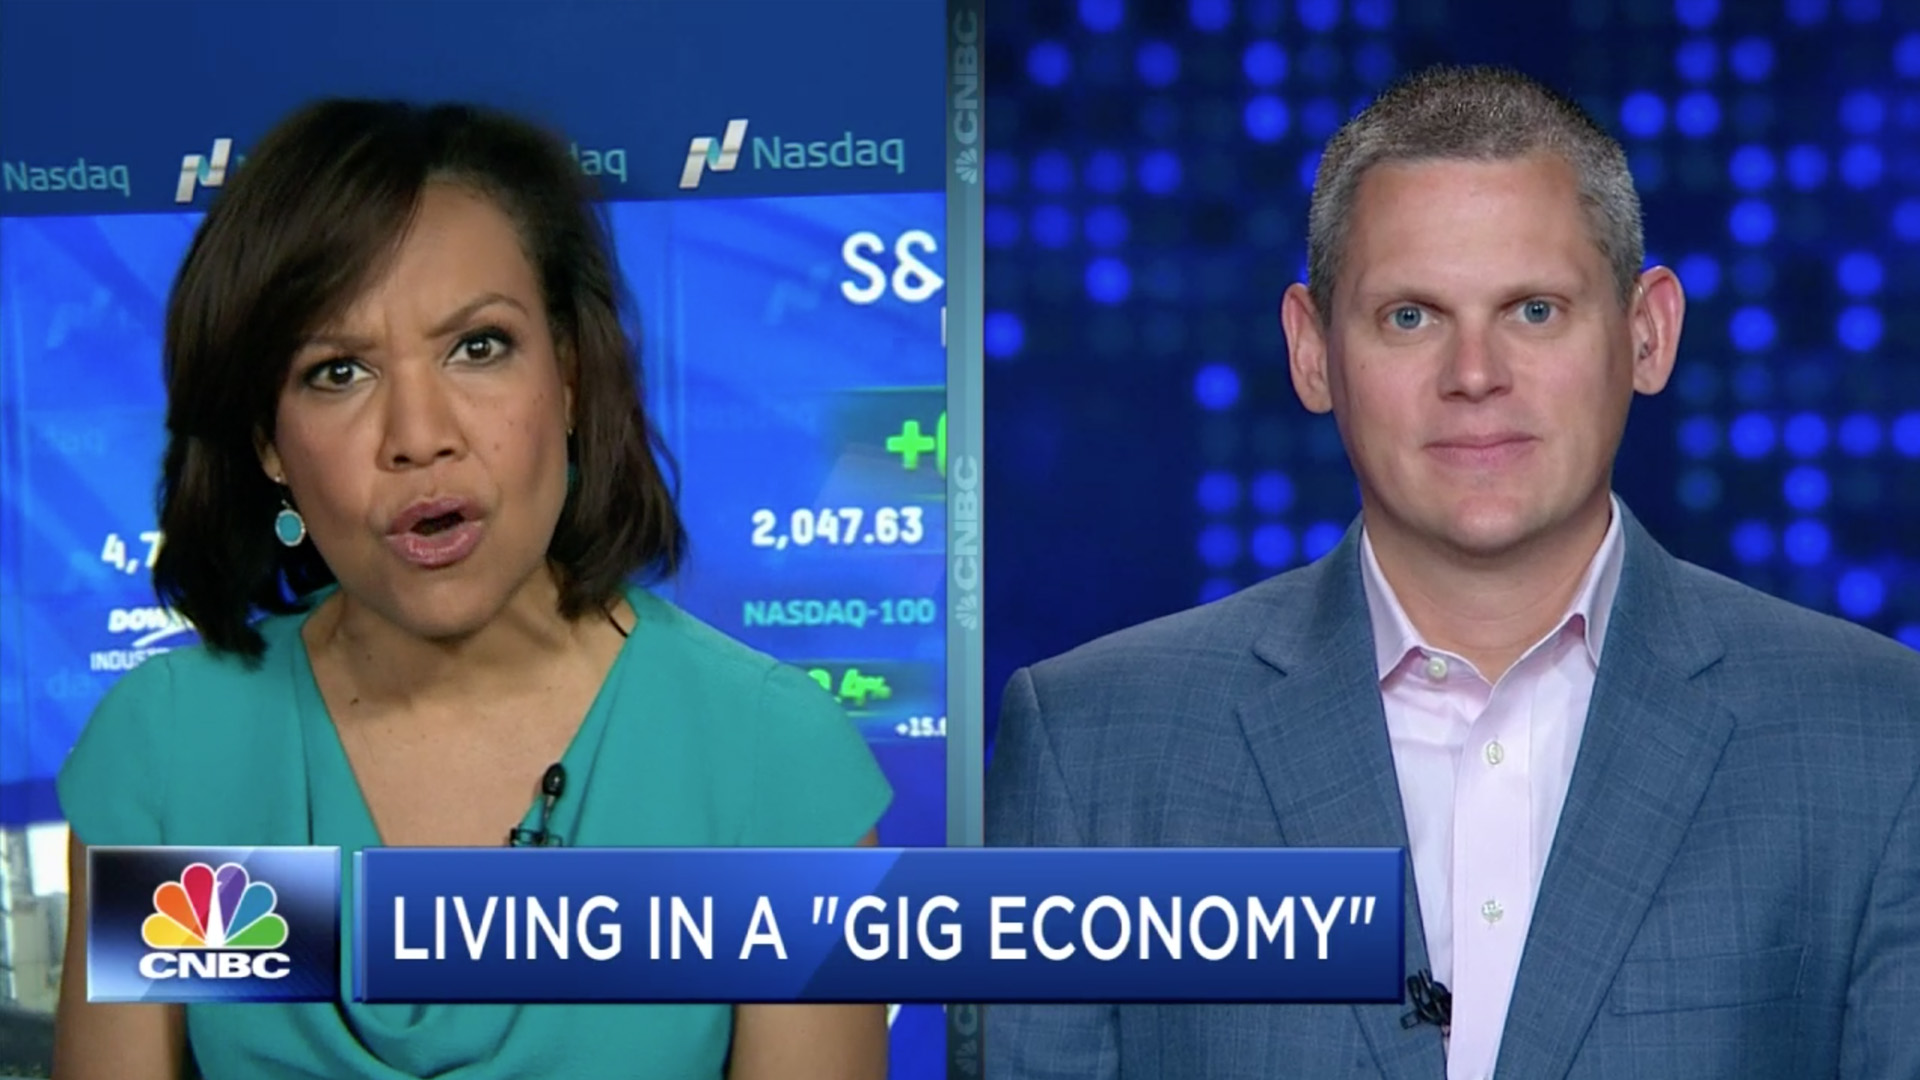 Majority of Americans are Unaware of the Gig Economy